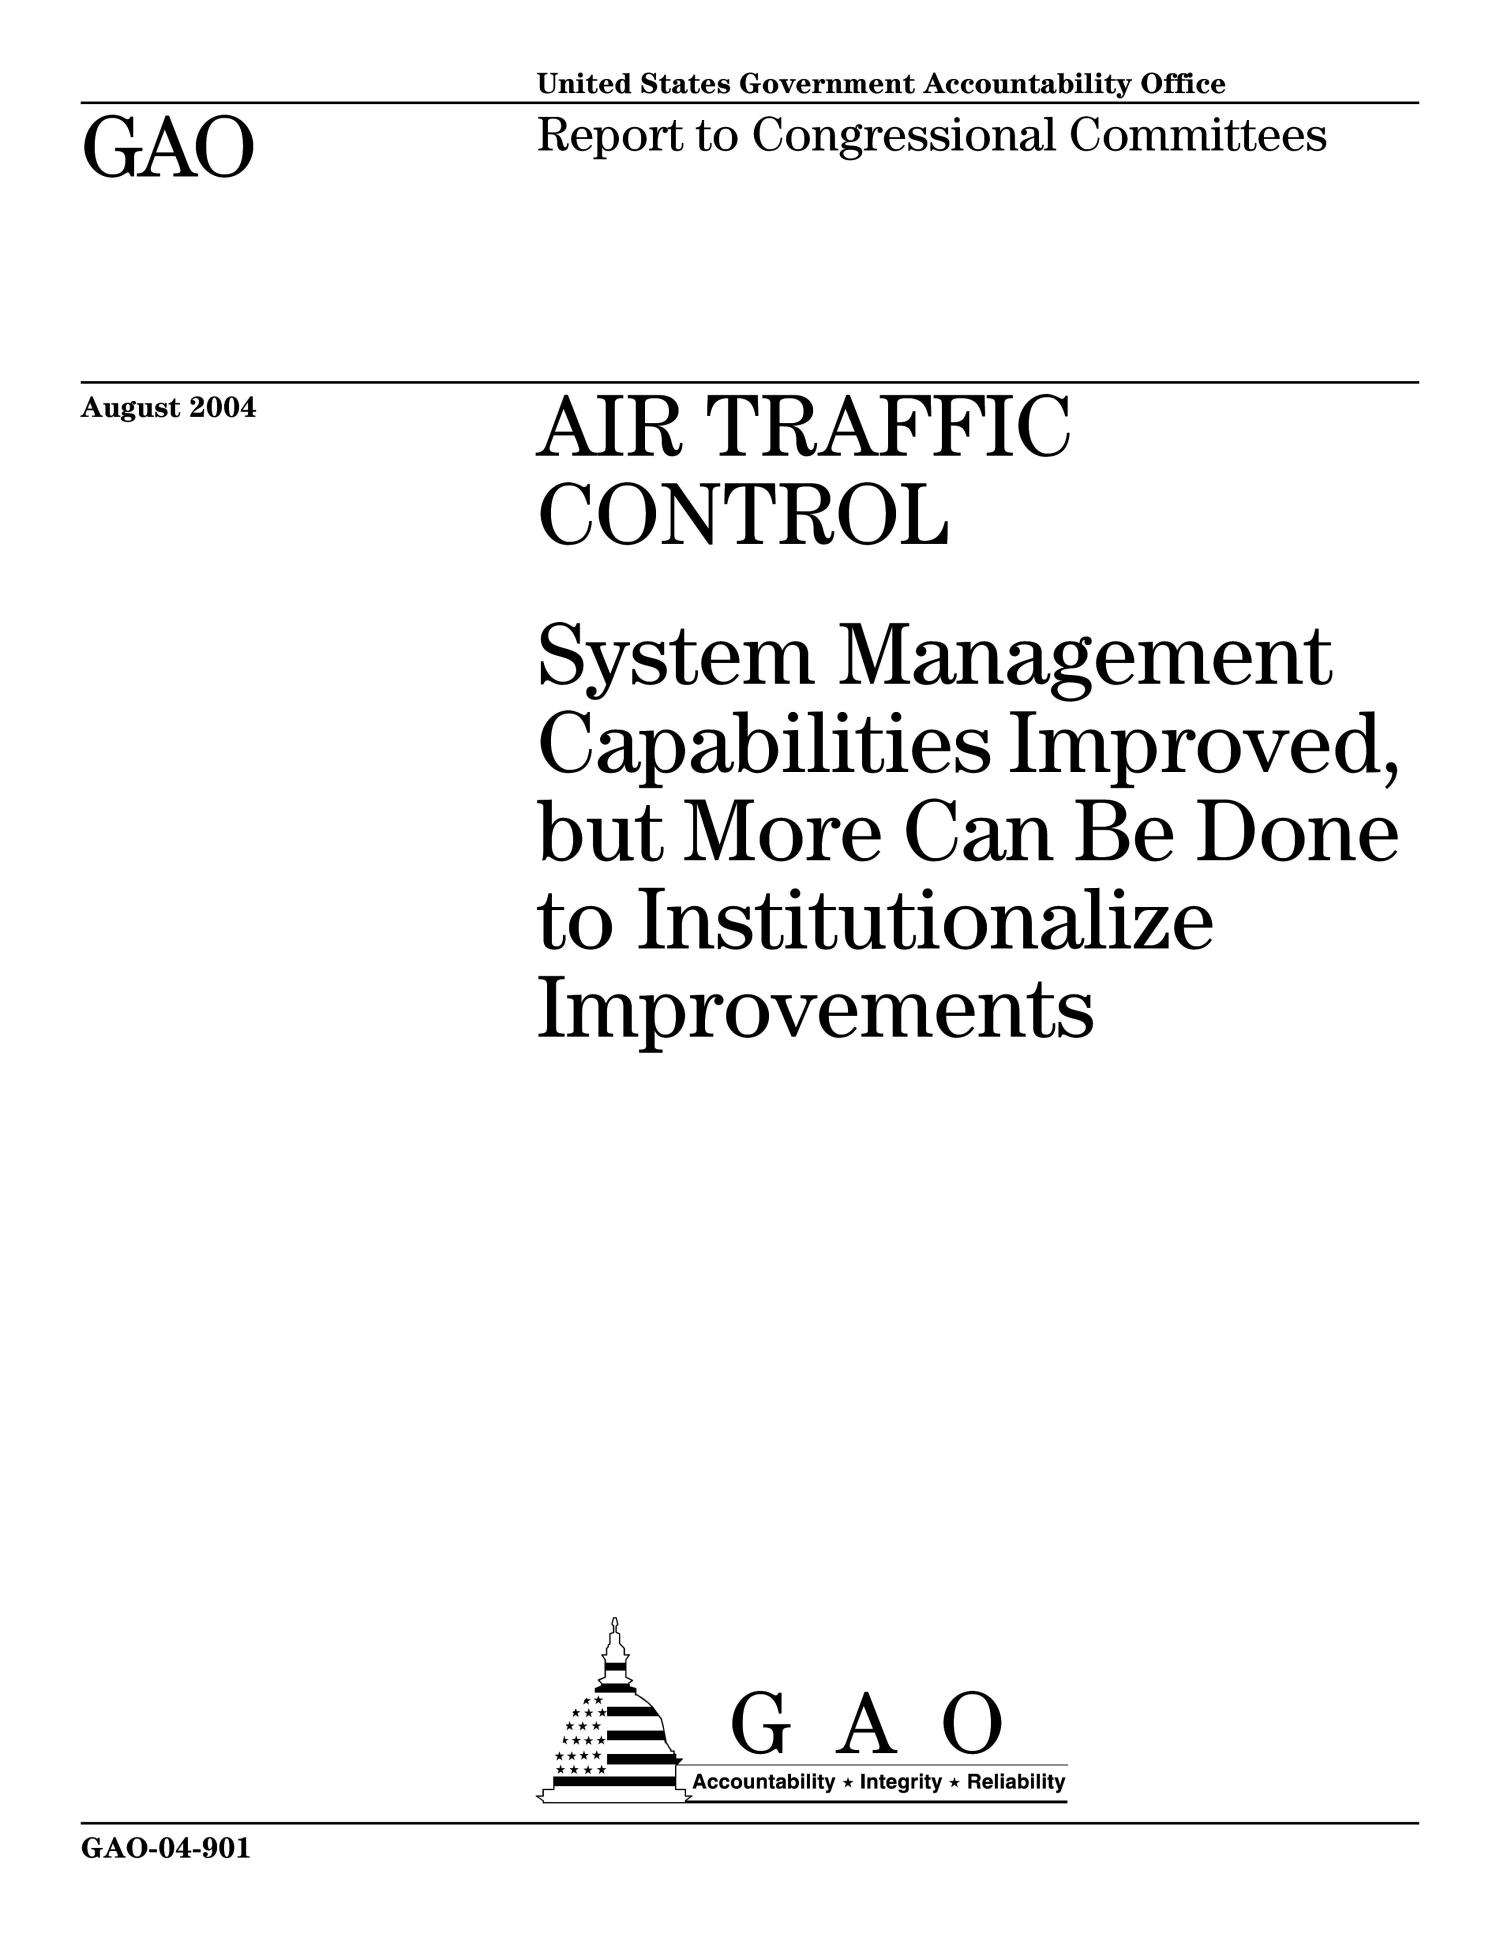 Air Traffic Control: System Management Capabilities Improved, but More Can Be Done to Institutionalize Improvements                                                                                                      [Sequence #]: 1 of 194